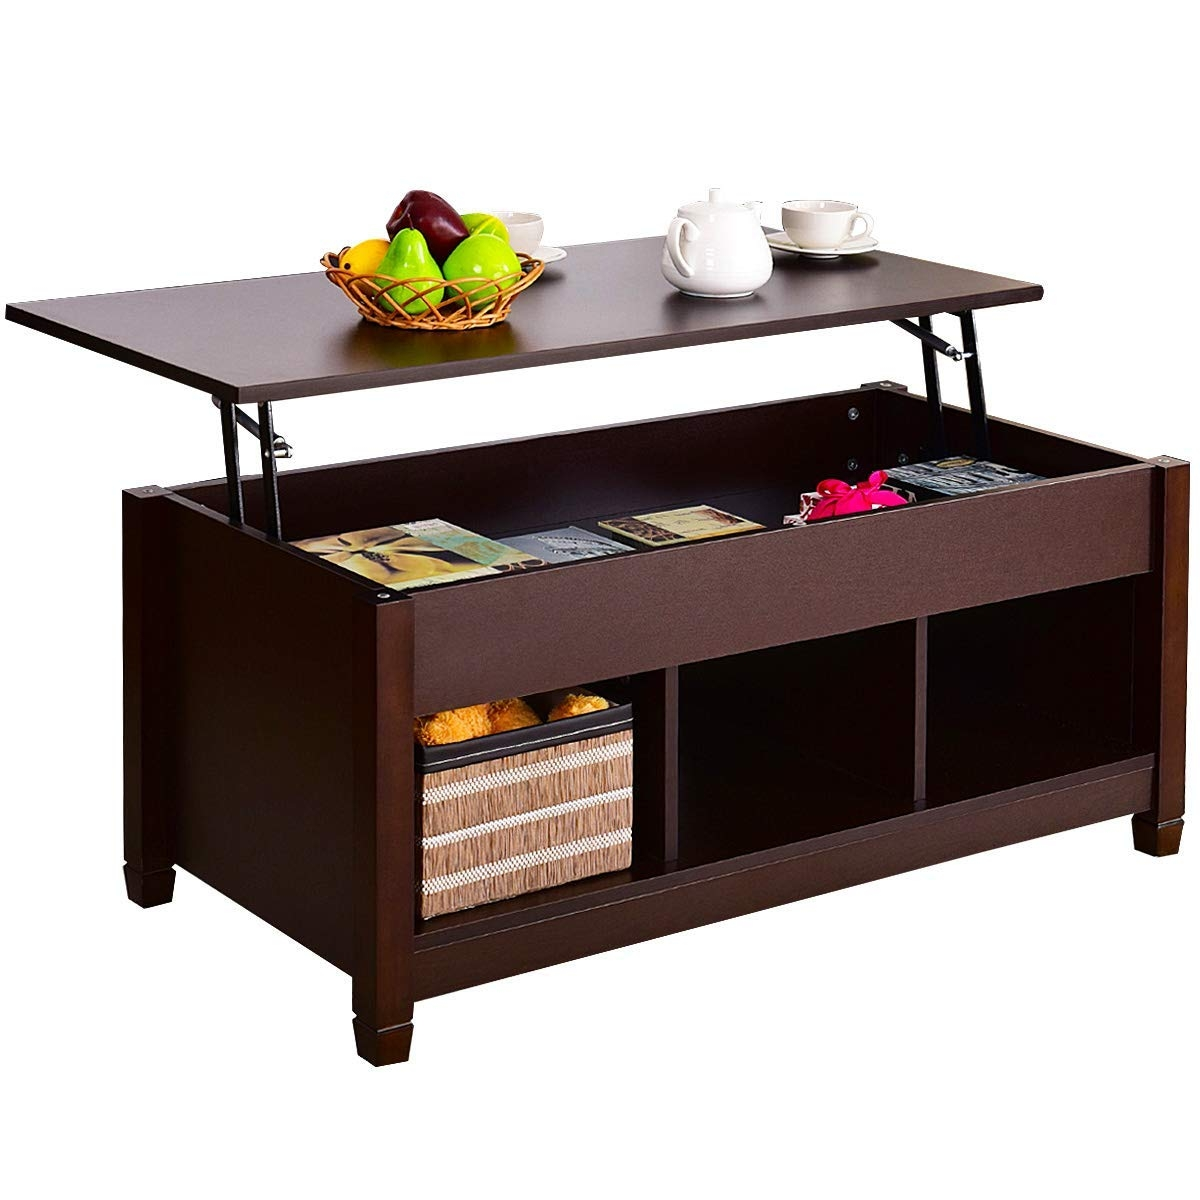 Lift Top Coffee Table w/ Hidden Compartment and Storage Shelves-Coffee